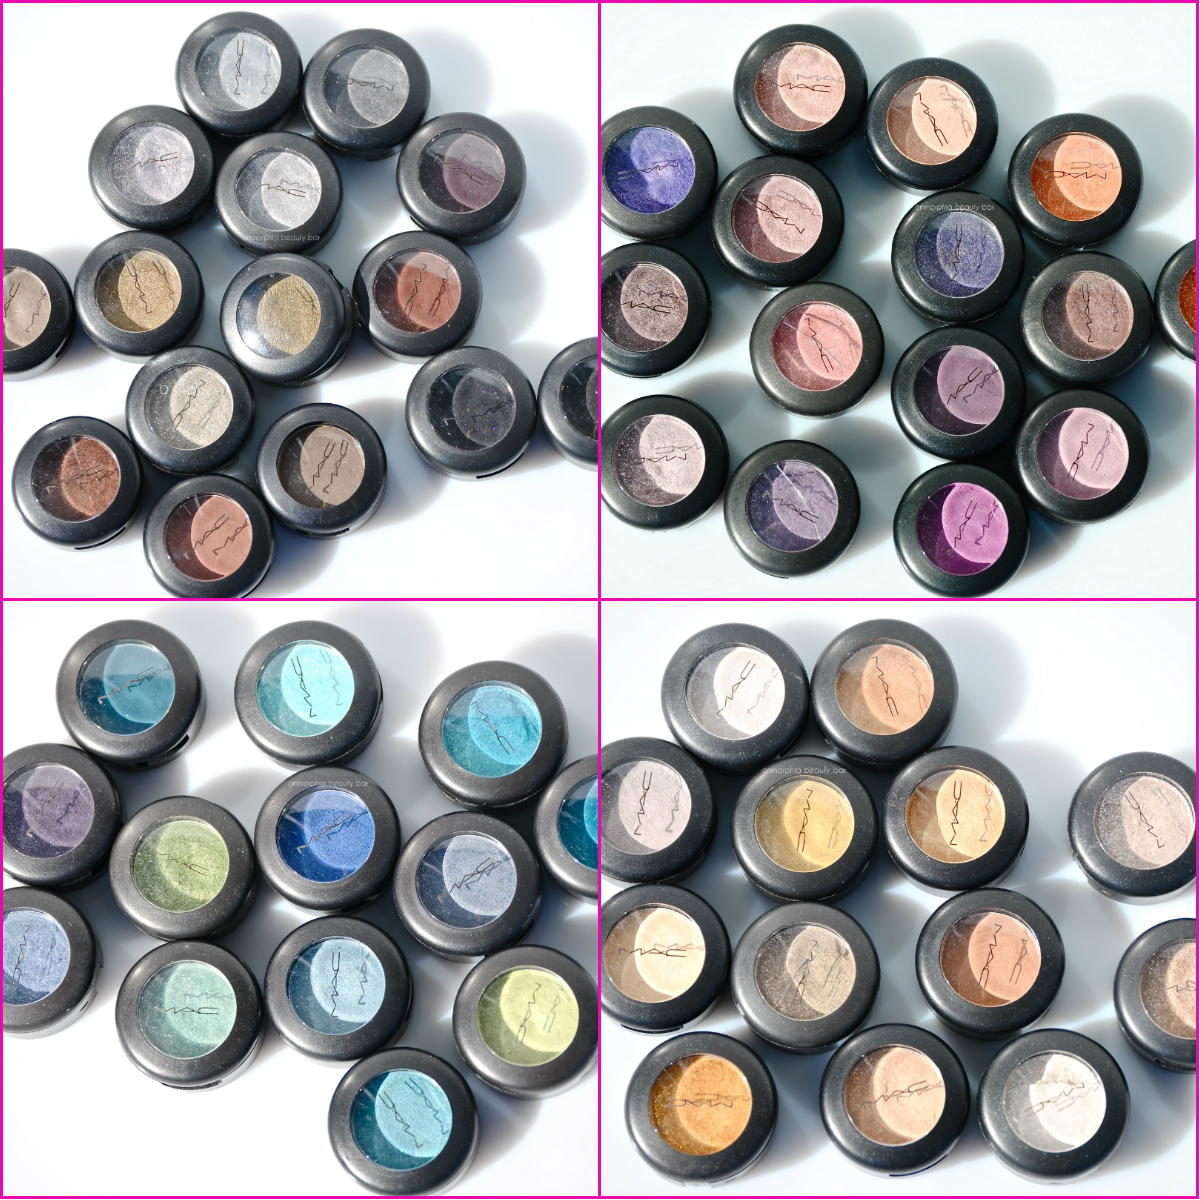 Coloured Raine's cruelty-free American made cosmetics line was founded to encourage self-expression and diversity, with a line that suits all skin tones, including women of bloggeri.tk long-lasting lipsticks, and bold eyeshadows in an array of unparalleled hues, Coloured Raine is renowned as the most beautiful and exotic makeup in the world.